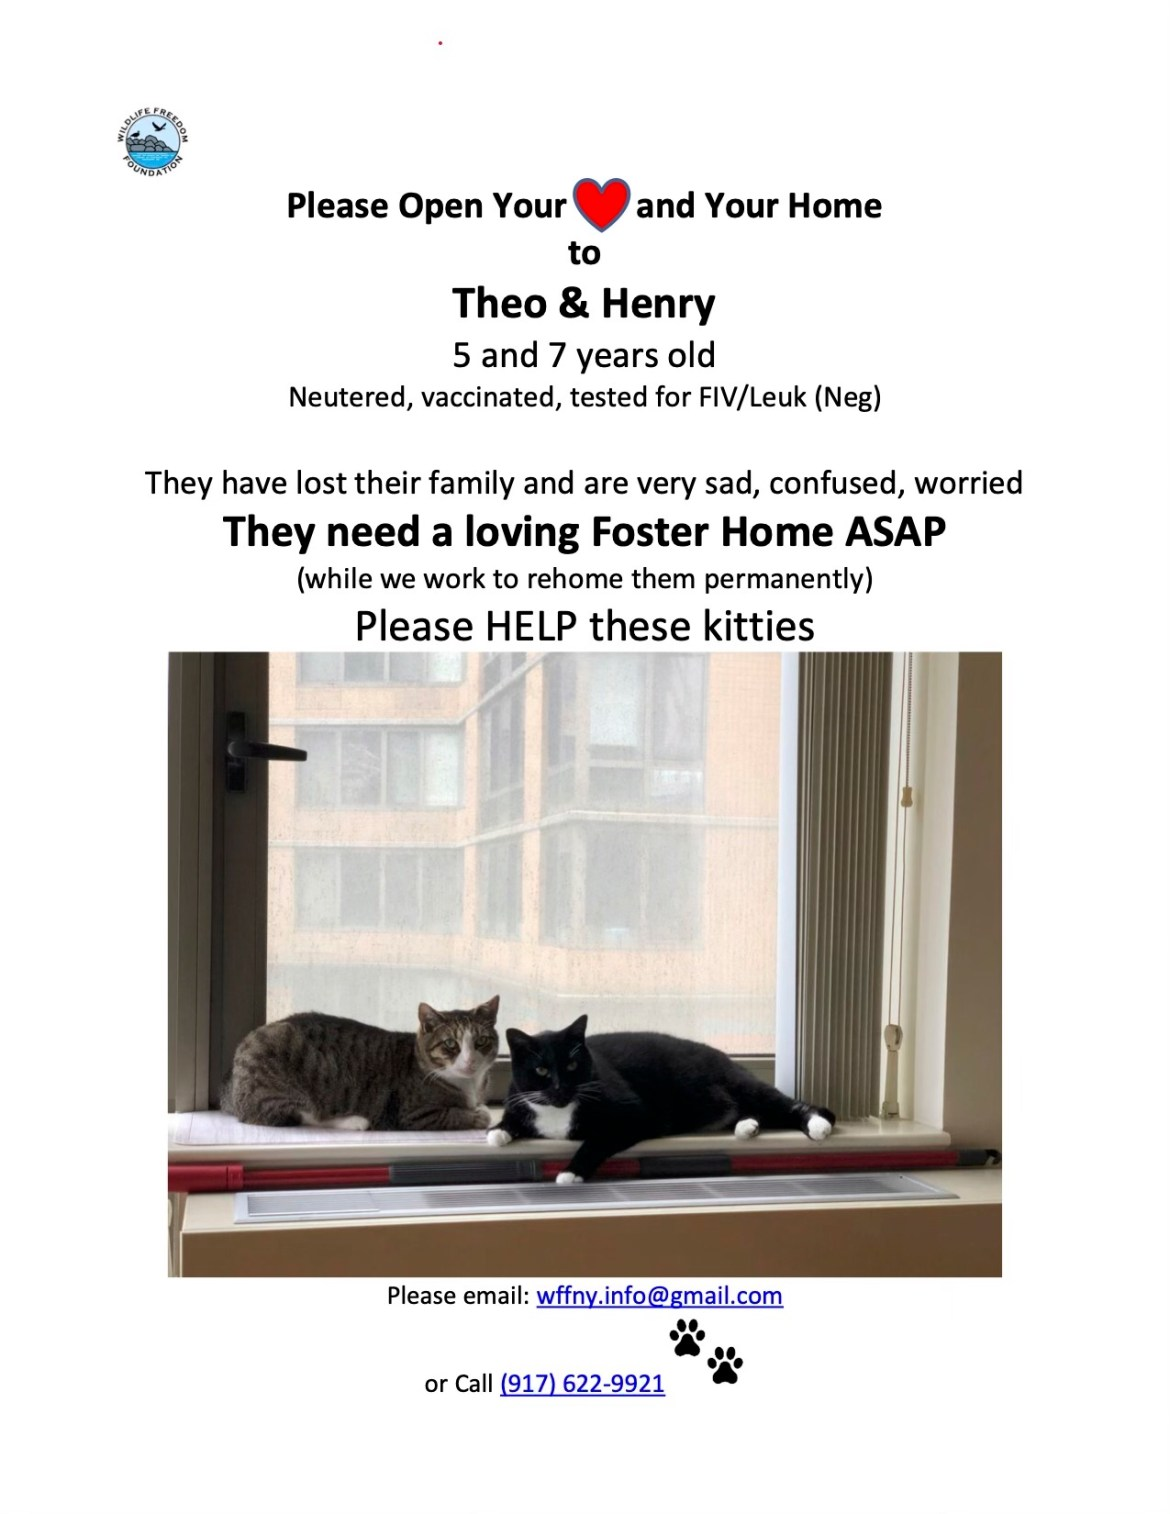 Roosevelt Island Cat Lovers: Theo and Henry Lost Their Home. Can you help?